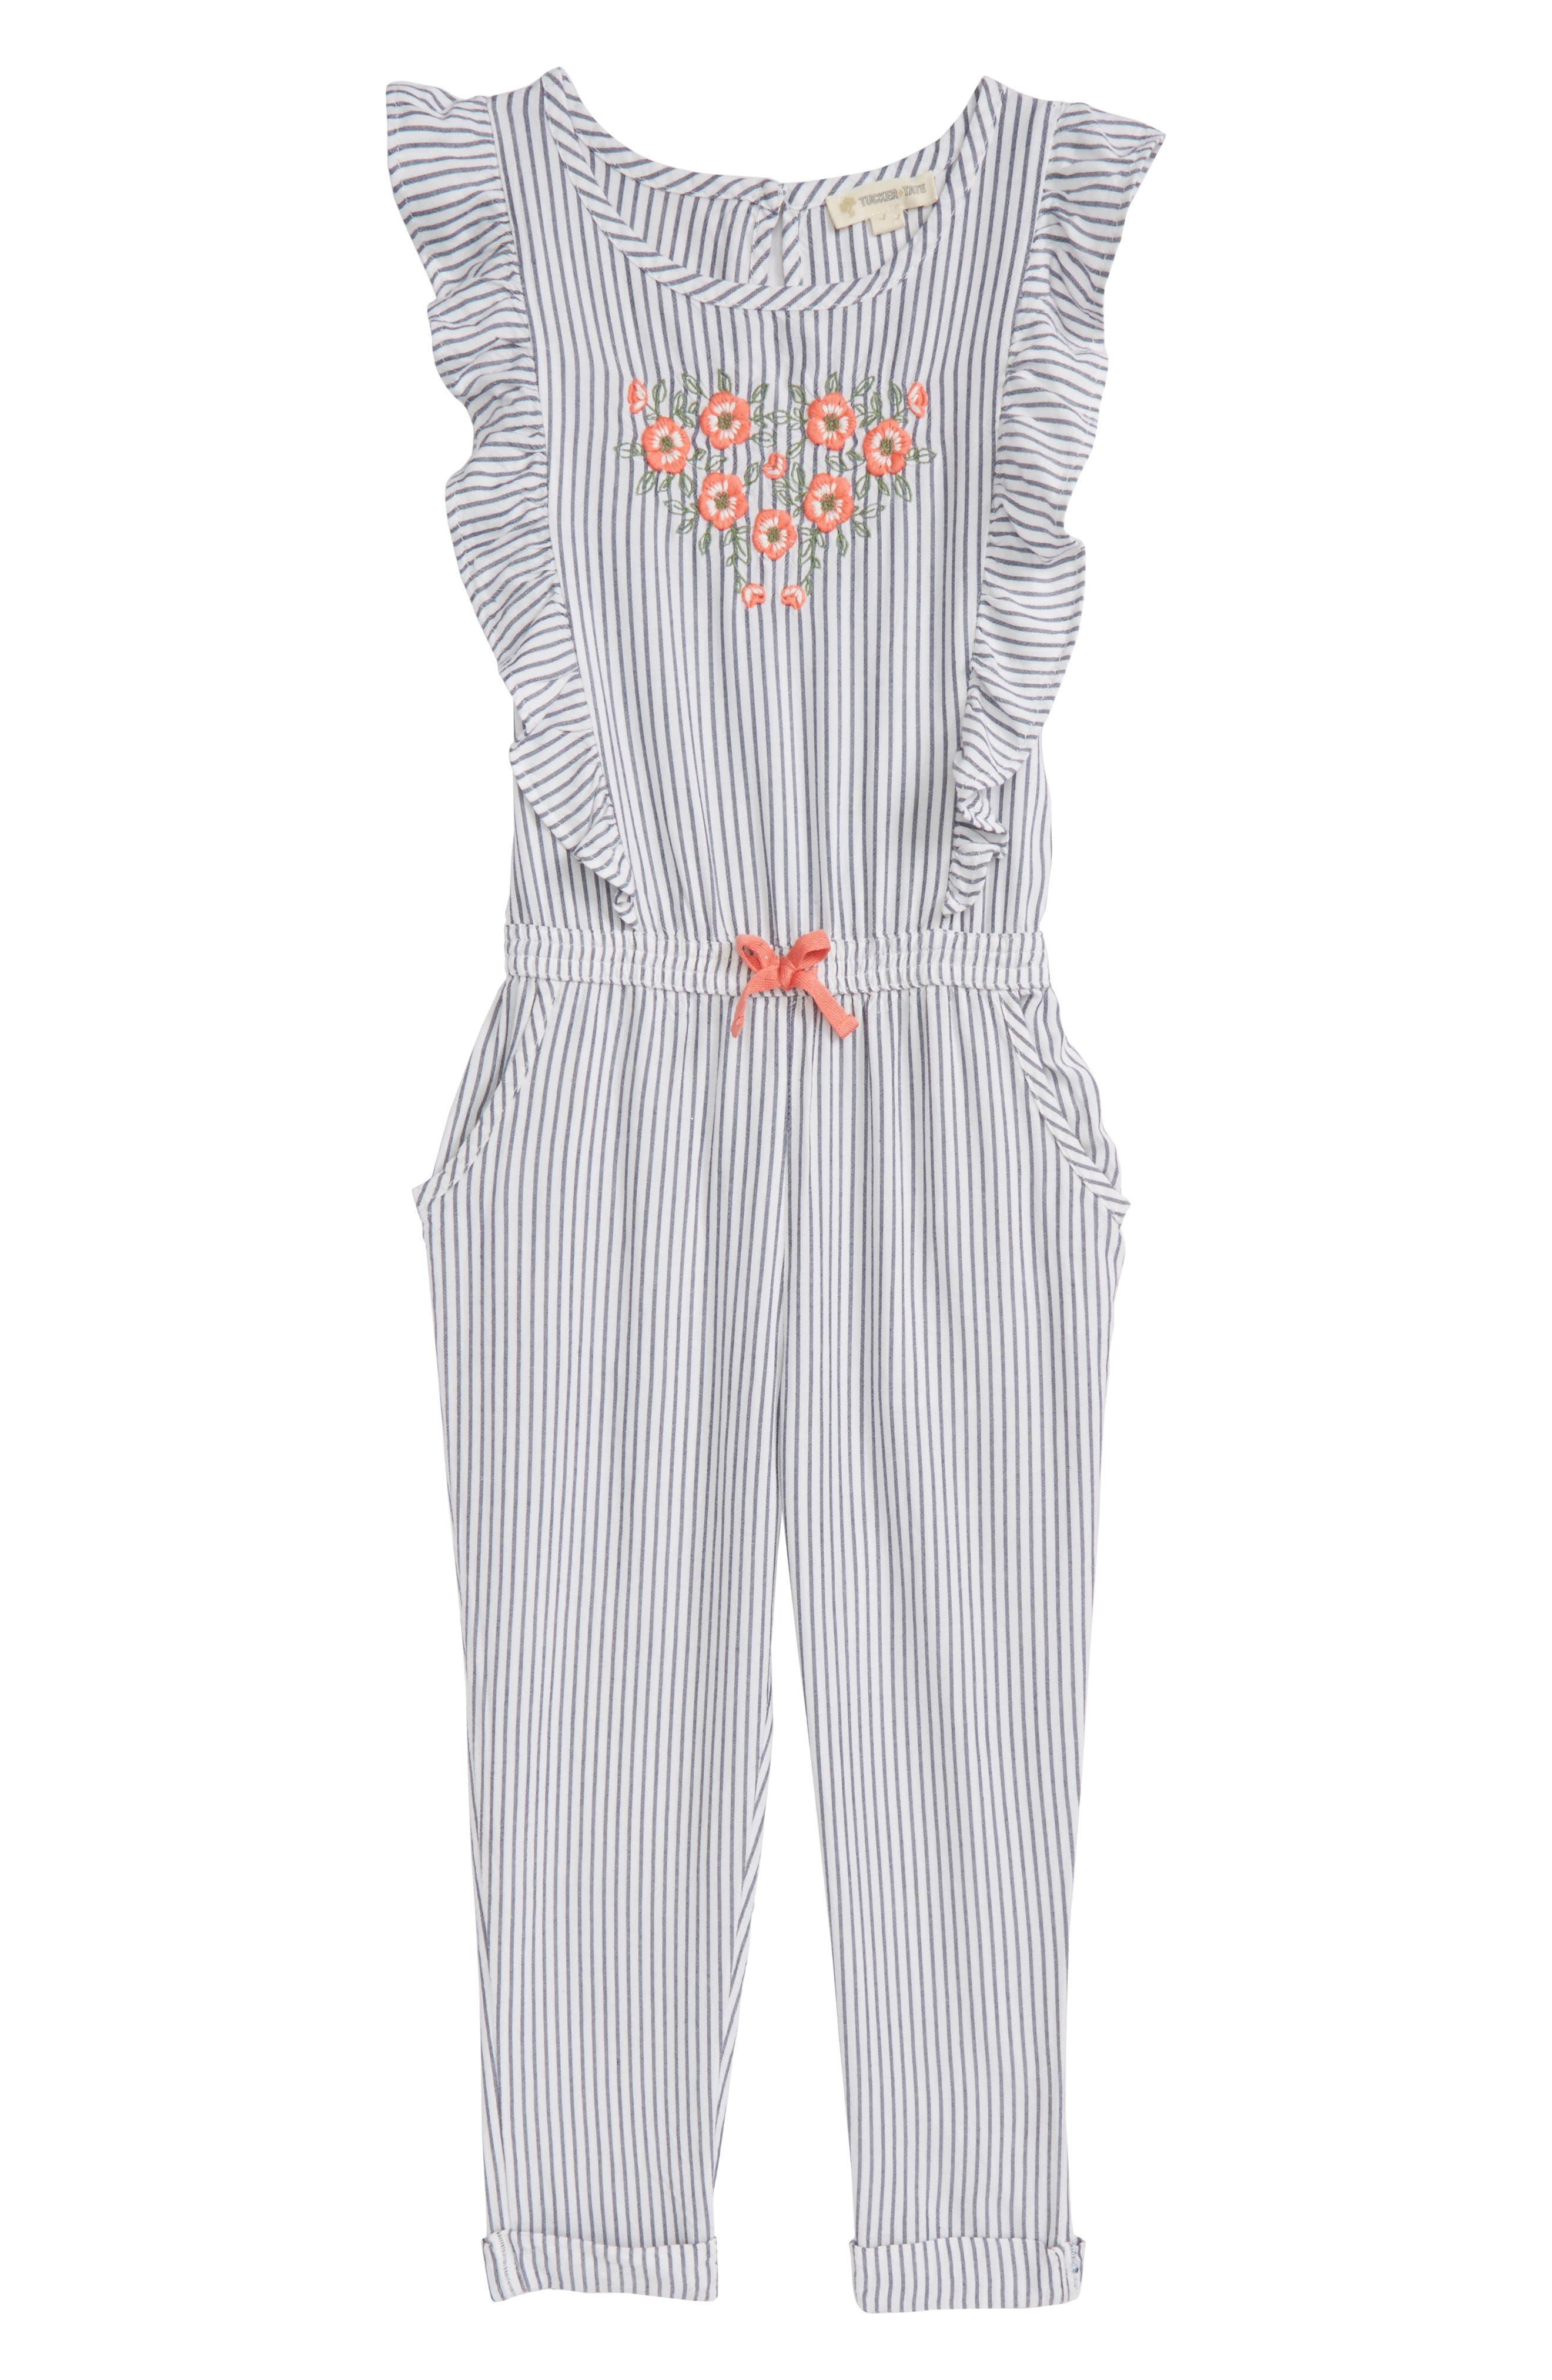 Flutter Sleeve Embroidered Romper,                             Main thumbnail 1, color,                             100